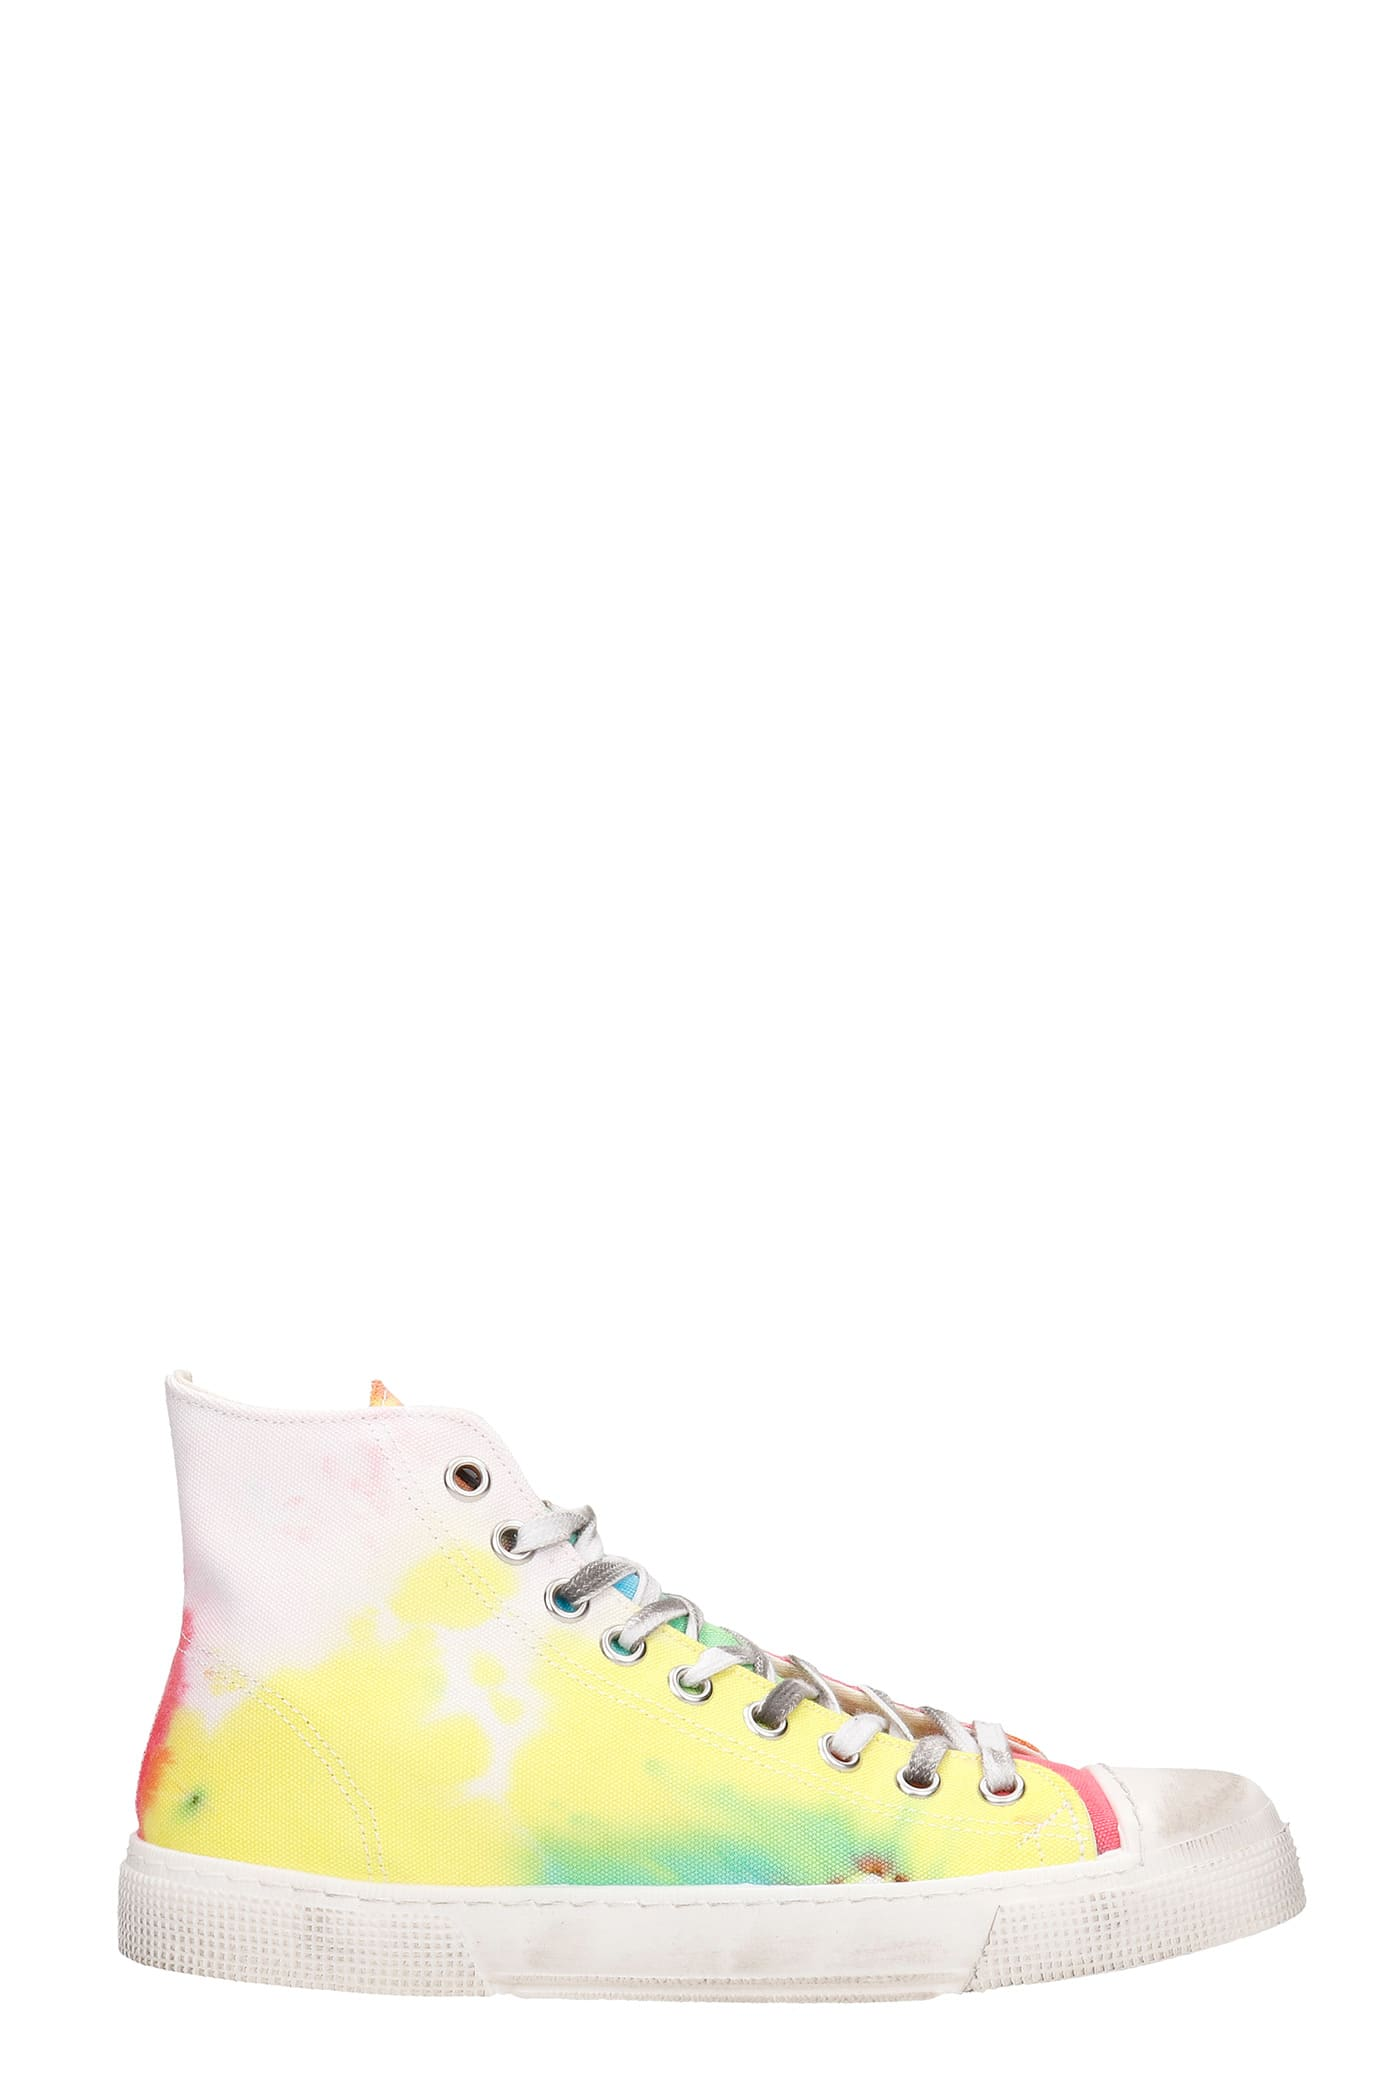 J.m High Sneakers In Multicolor Canvas